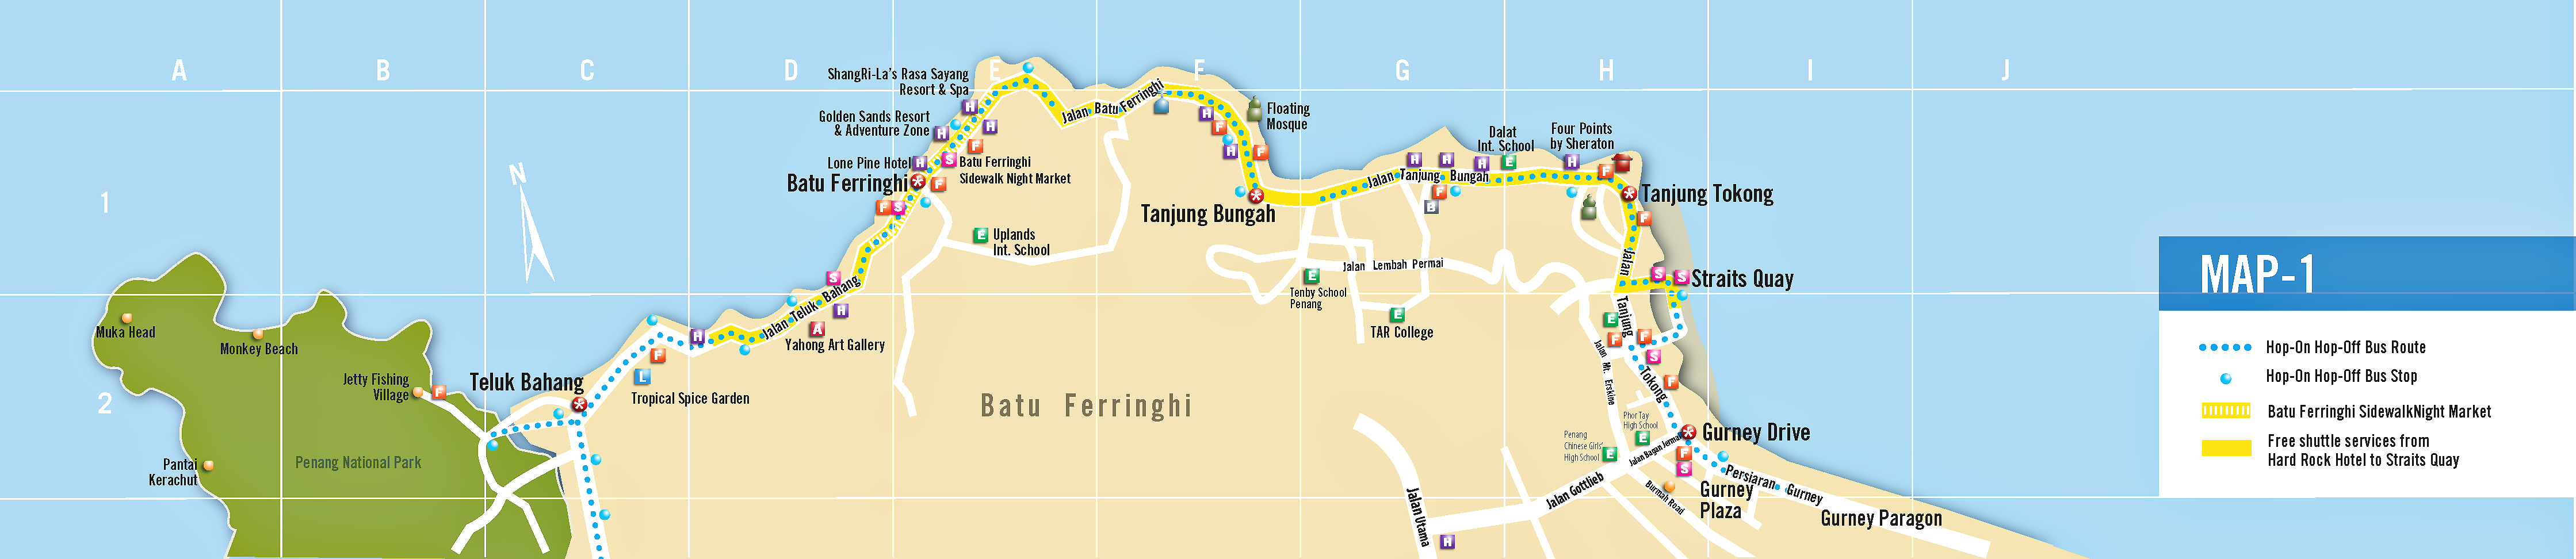 iN Penang FREE map l Latest Penang map for tourists